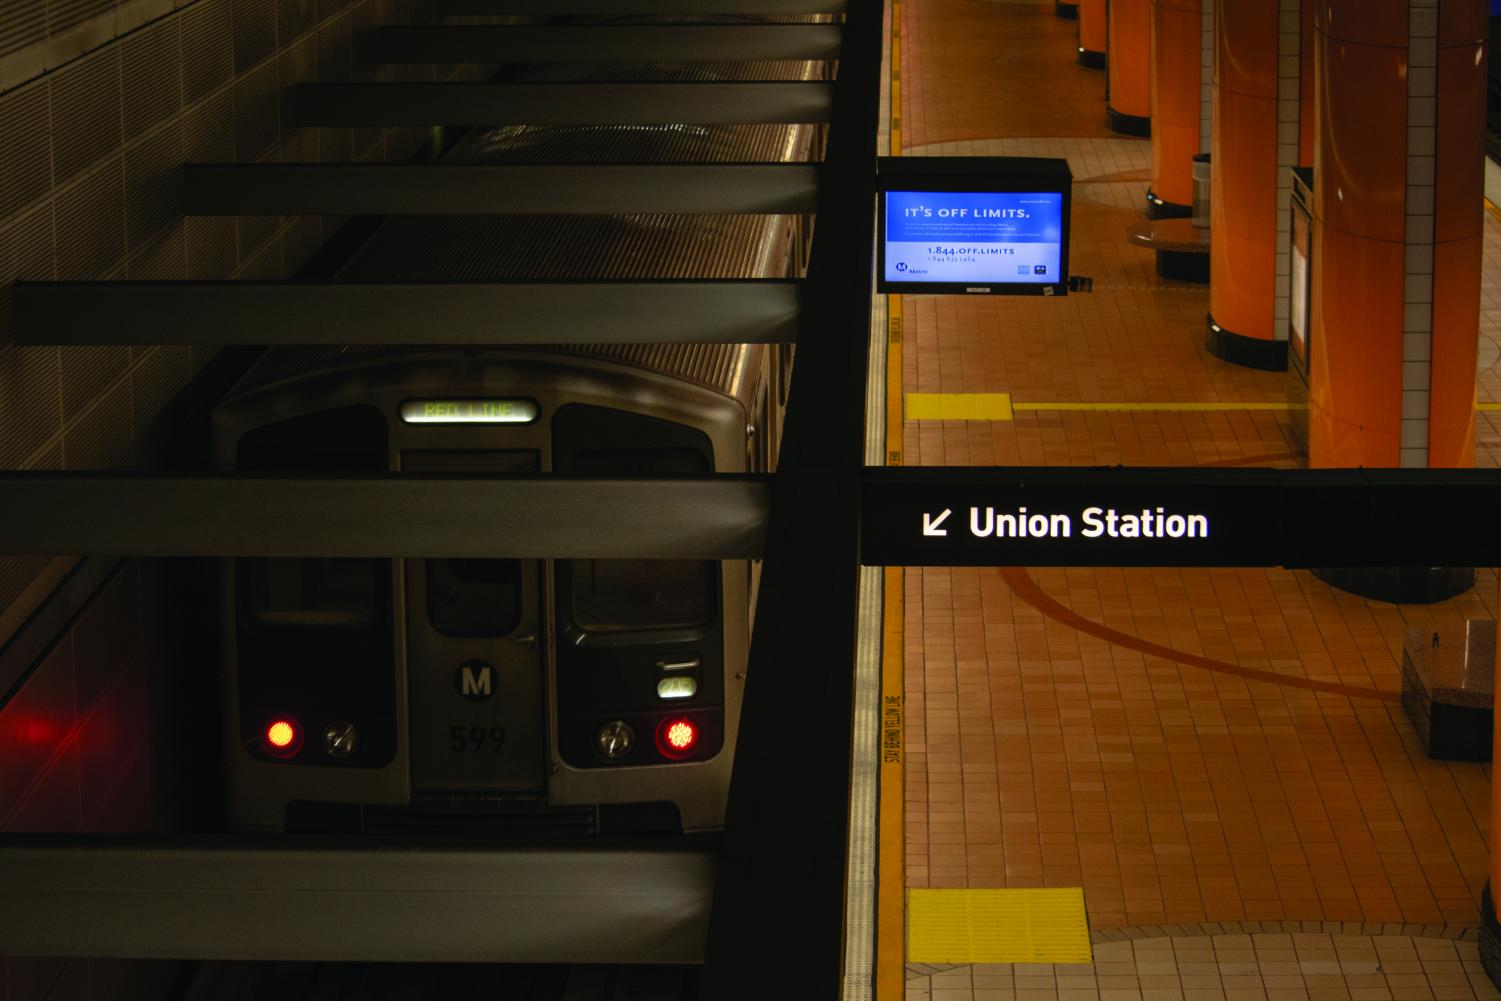 A warning about sexual harassment looms overhead as the popular commuter train with connections to Hollywood and Downtown Los Angeles, arrives at a station.